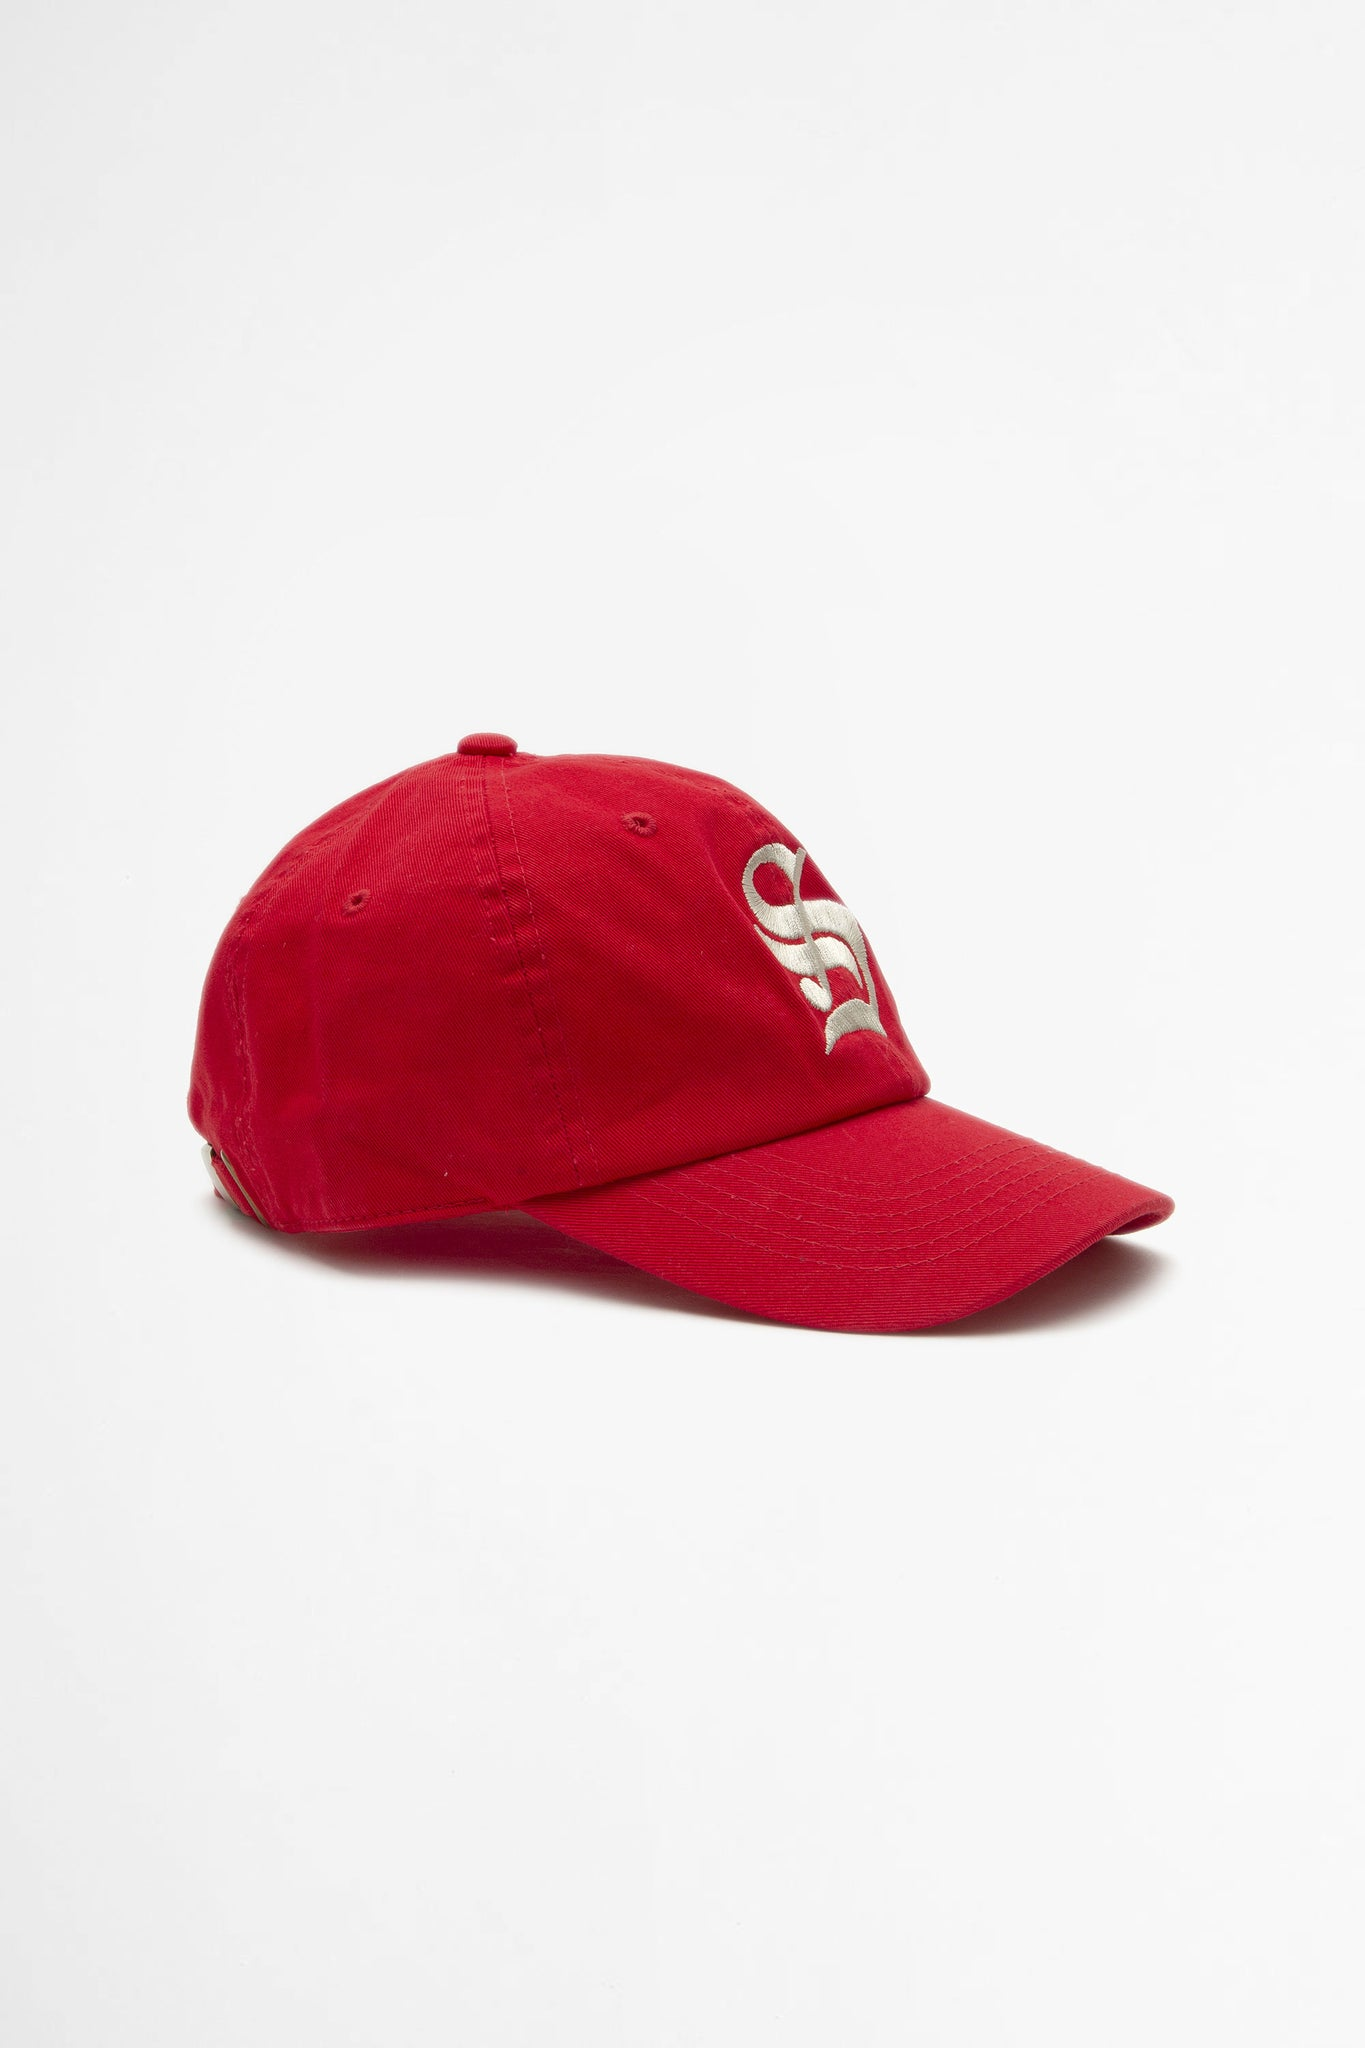 Old english S hat sport red